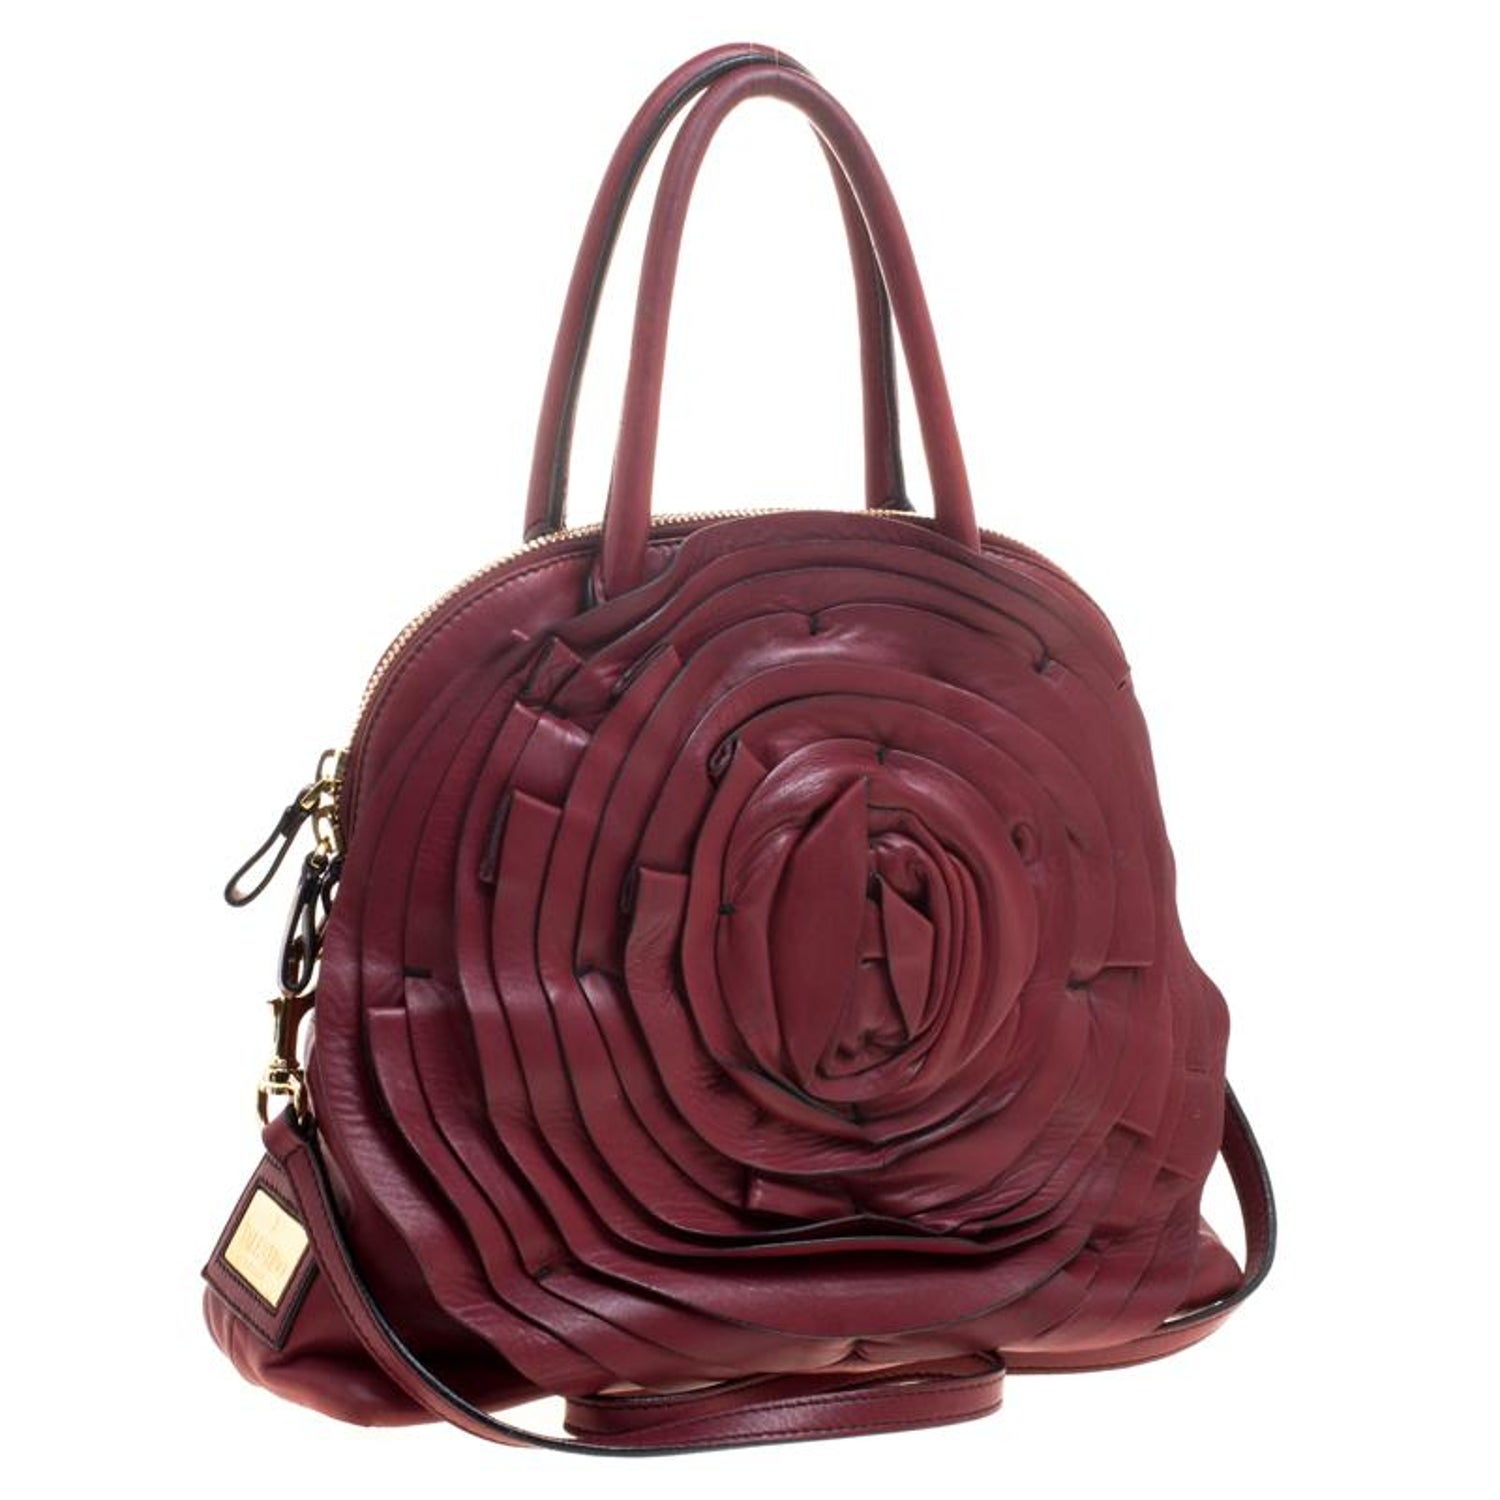 bca9b7fb64 Valentino Red Leather Petale Rose Dome Satchel For Sale at 1stdibs